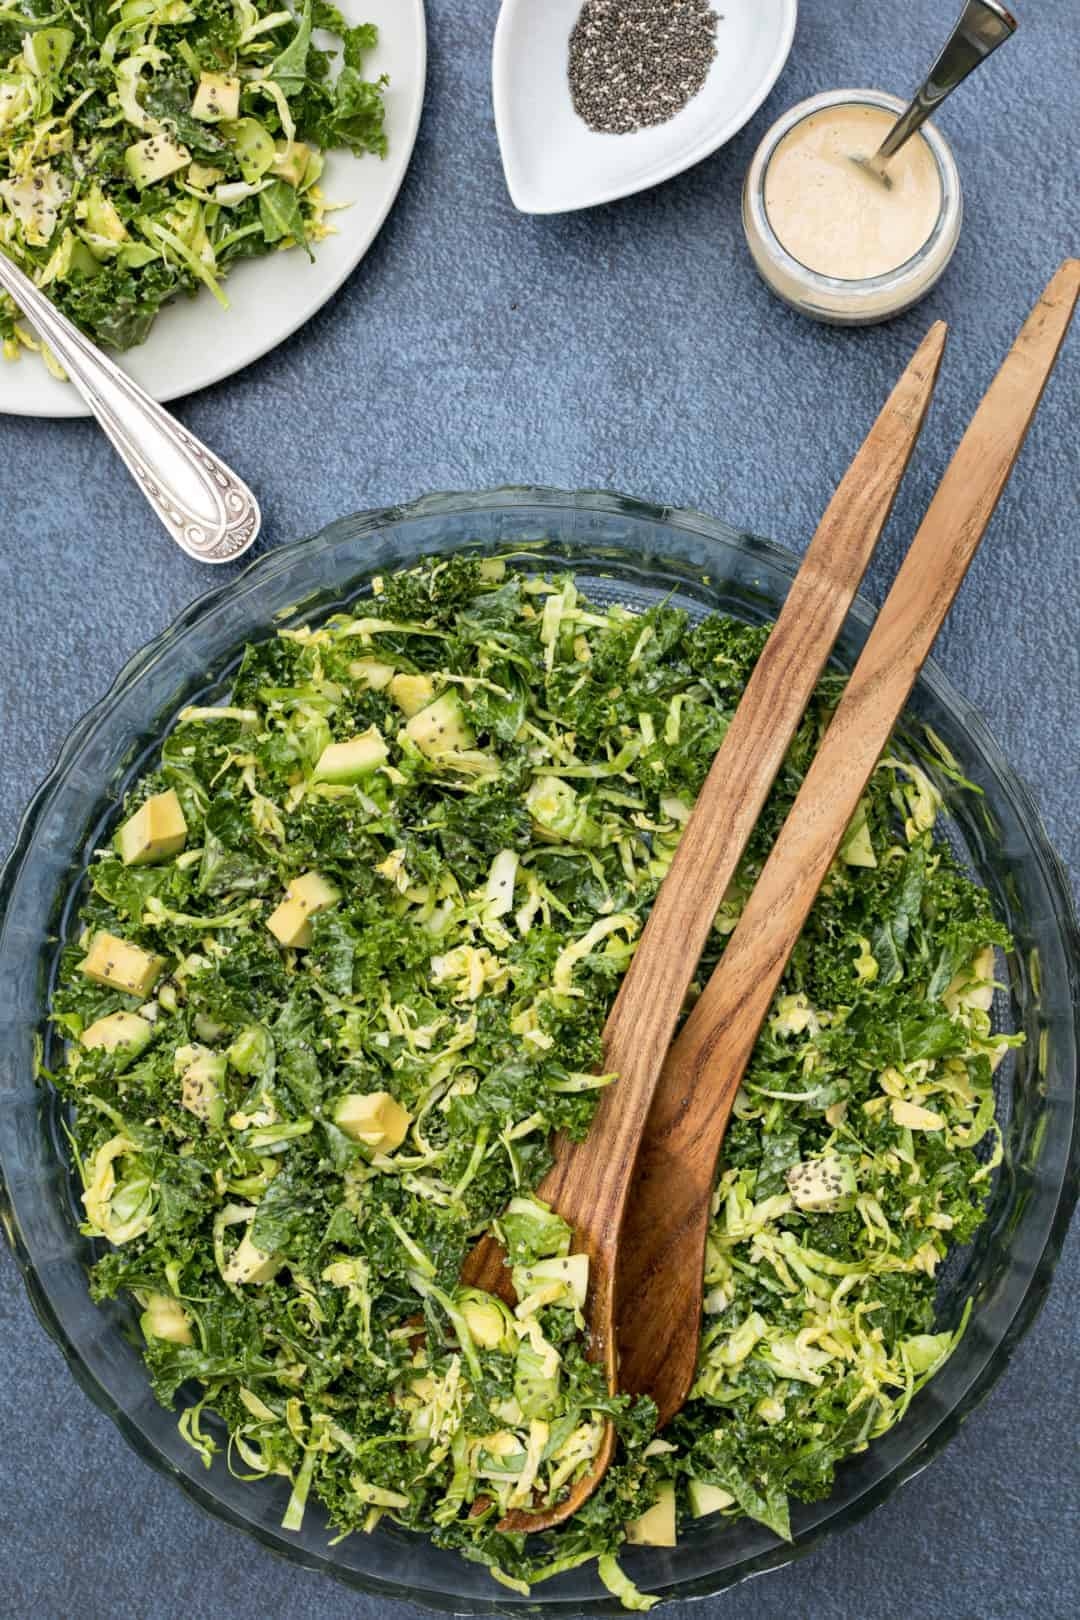 kale and brussels sprouts salad in large bowl with tongs, dressing, and small salad plate